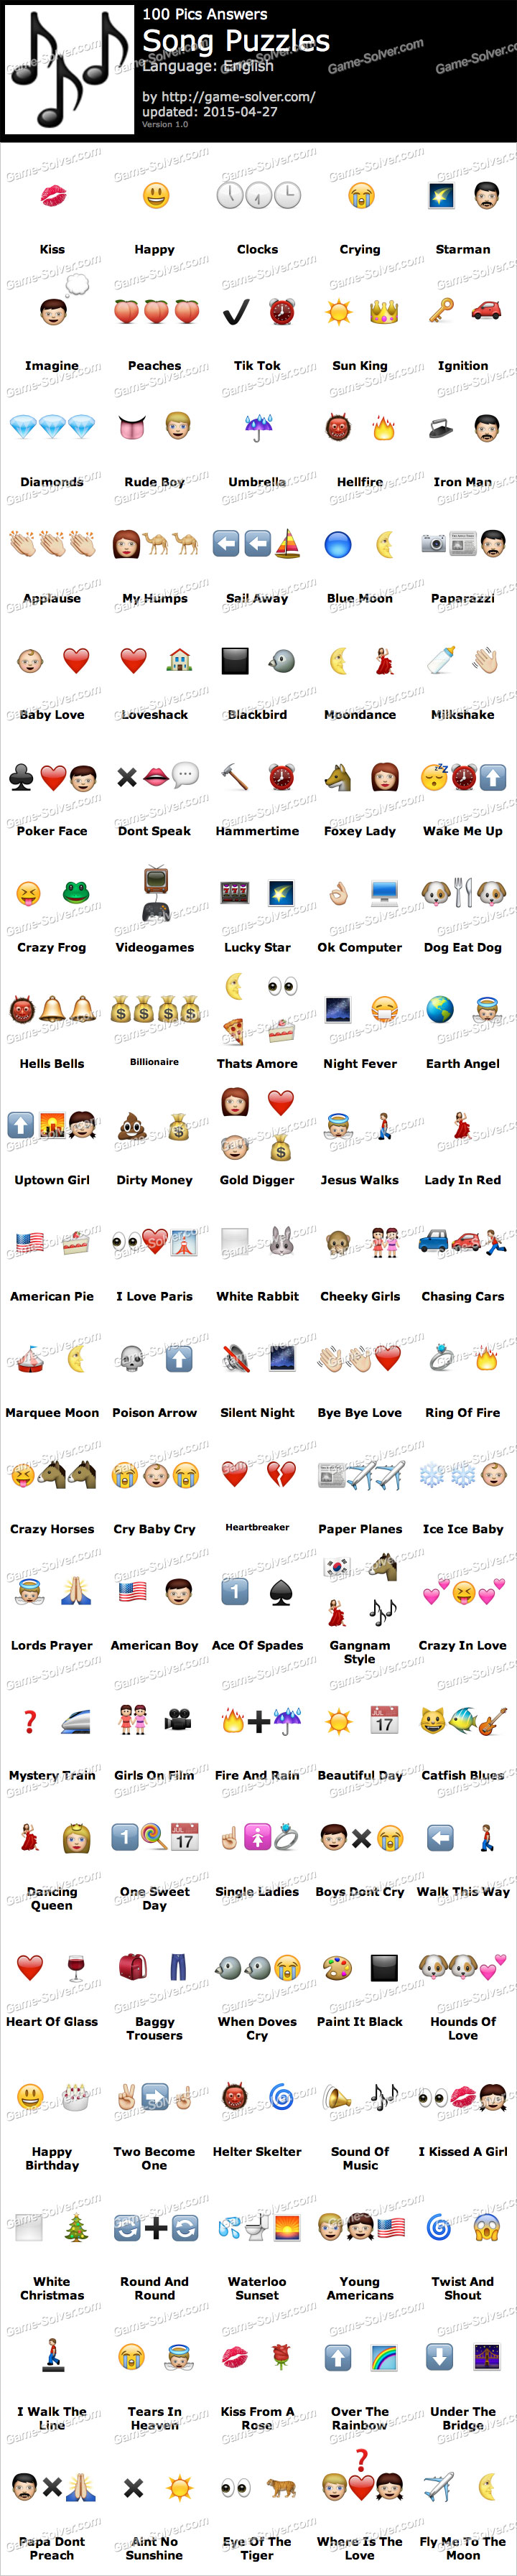 100 Pics Song Puzzles - Game Solver